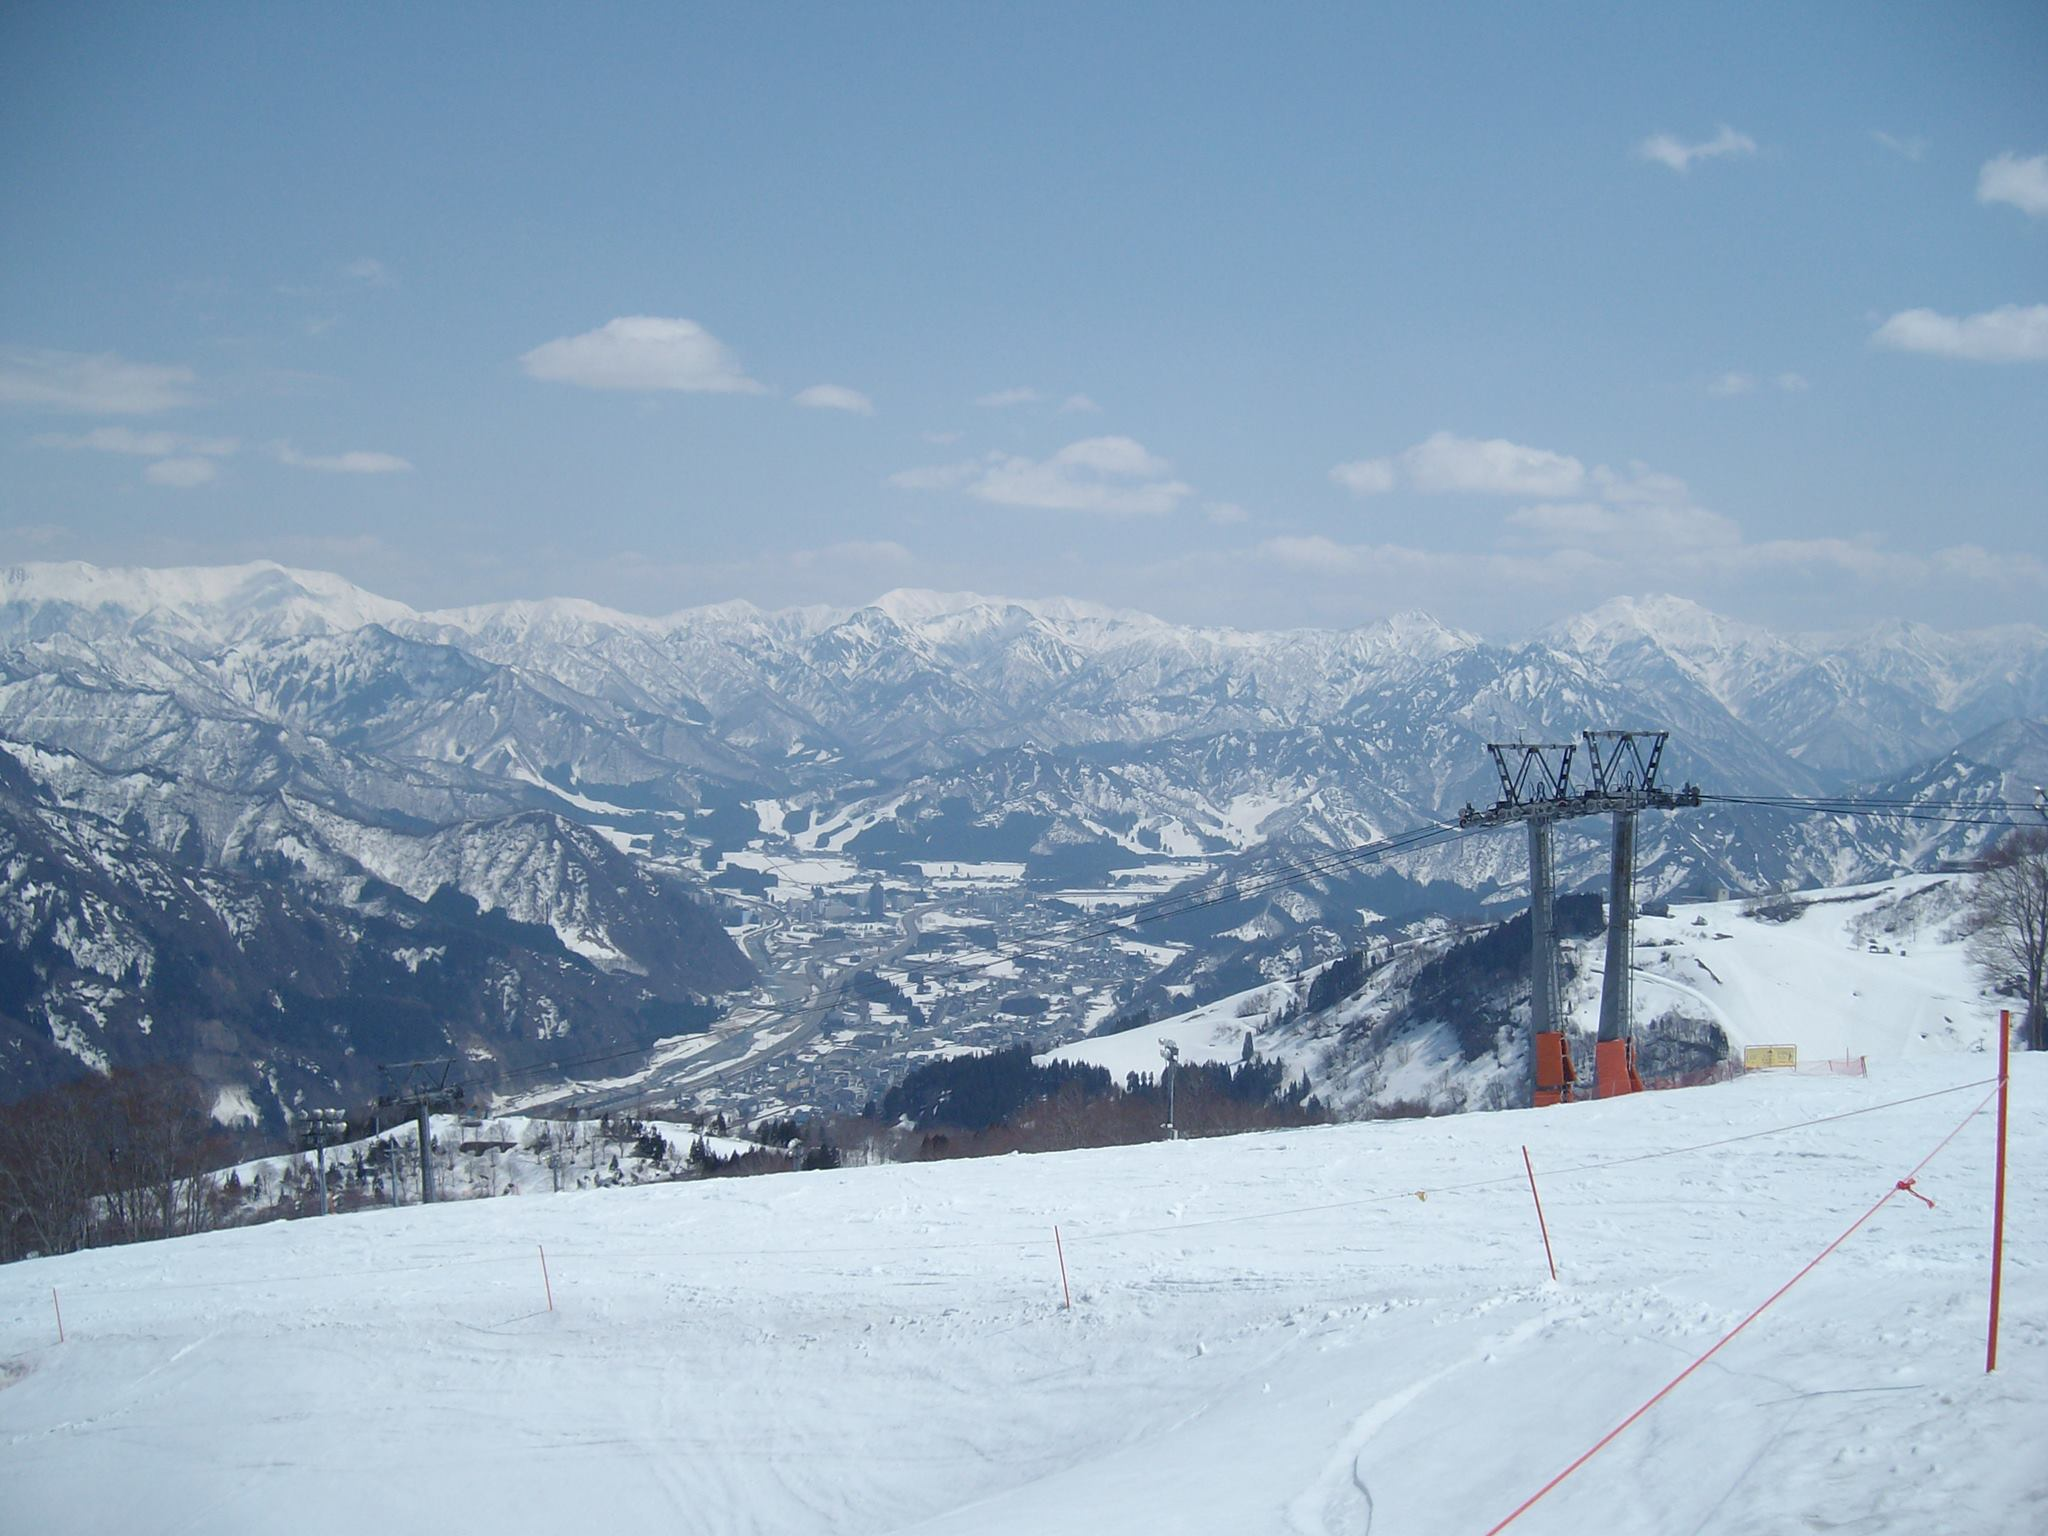 The Yuzawa valley